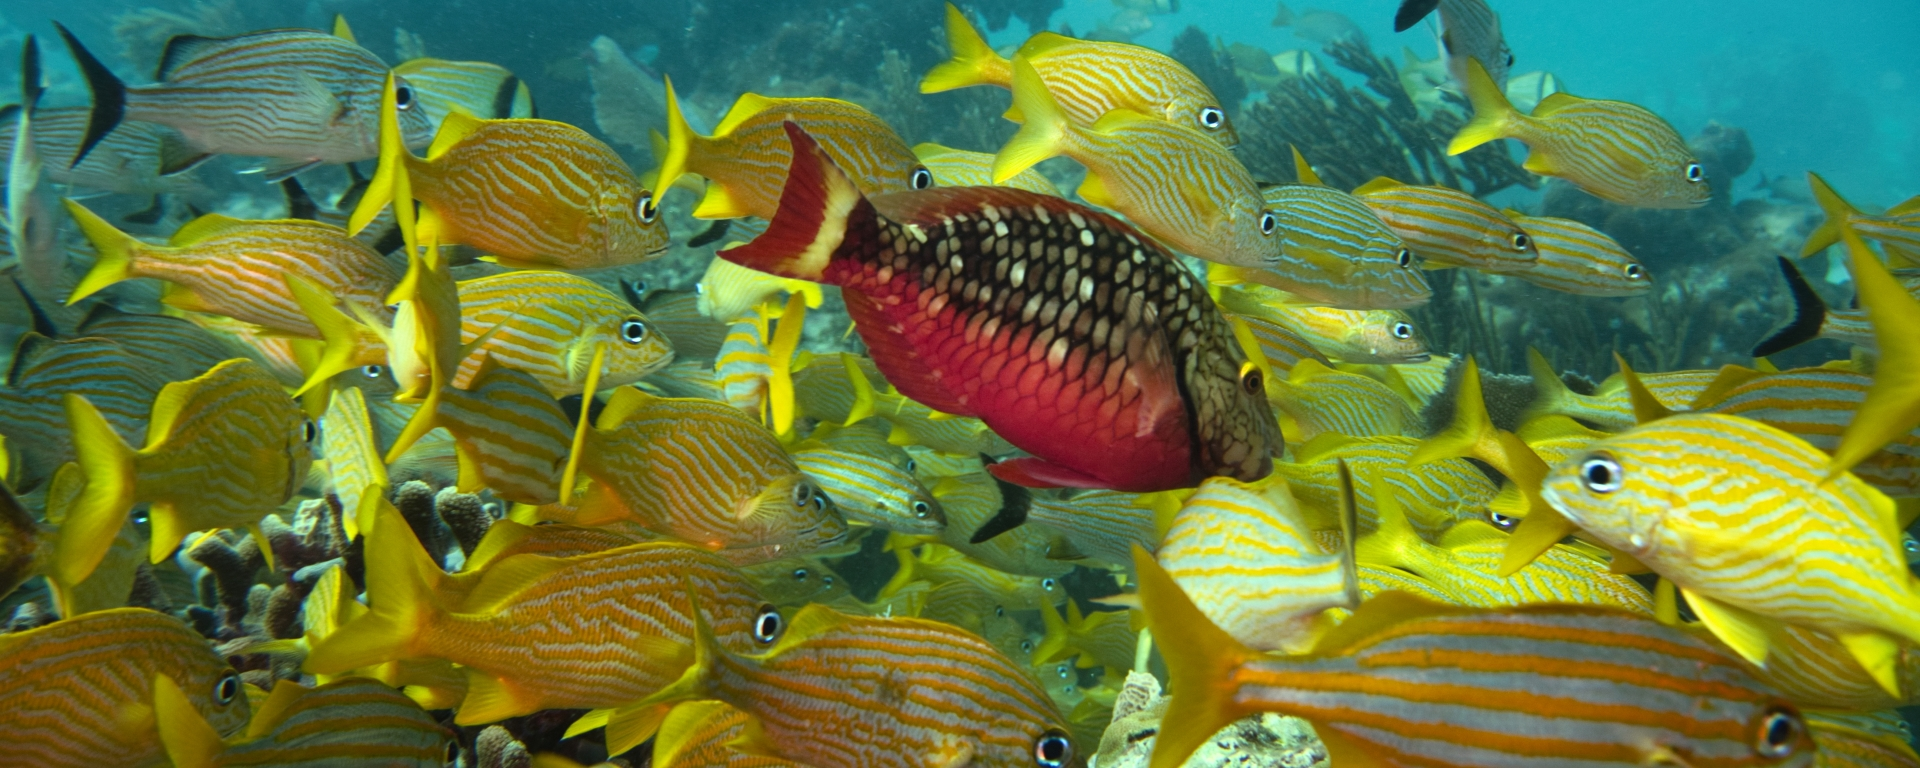 Stoplight Parrotfish and school of yellow grunts